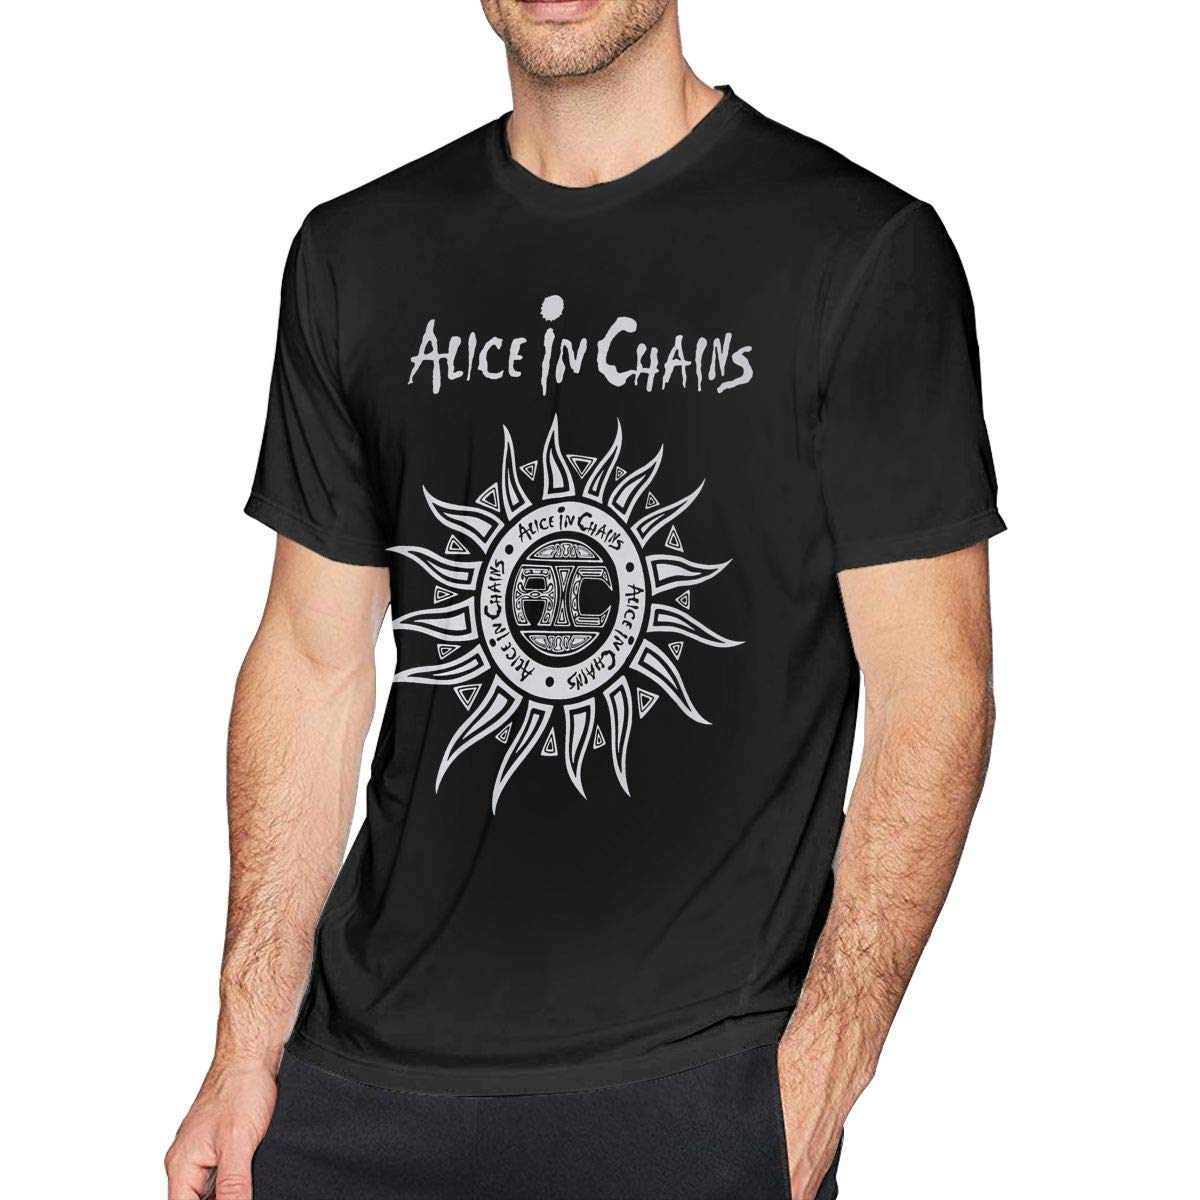 Hodenr Mens Fashion Alice in Chains T-Shirt Black